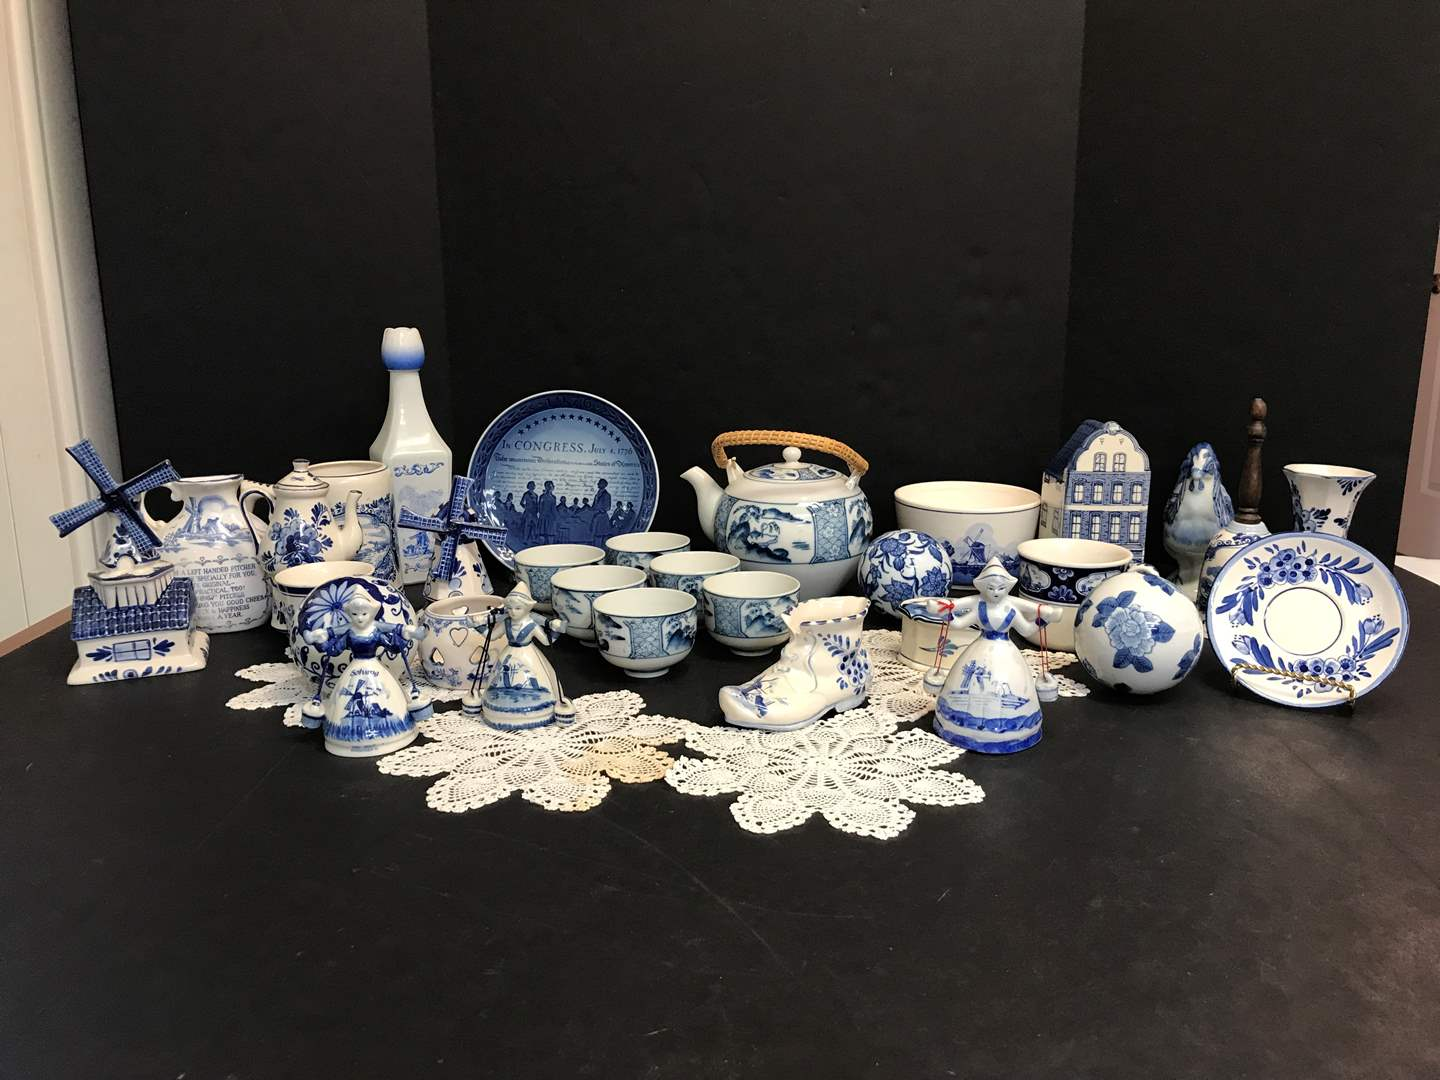 Lot # 81 - Beautiful Collection of Delfts Blue Items: Bells, Tea Pot, Windmill, Plates, Small Dishes & More  (main image)